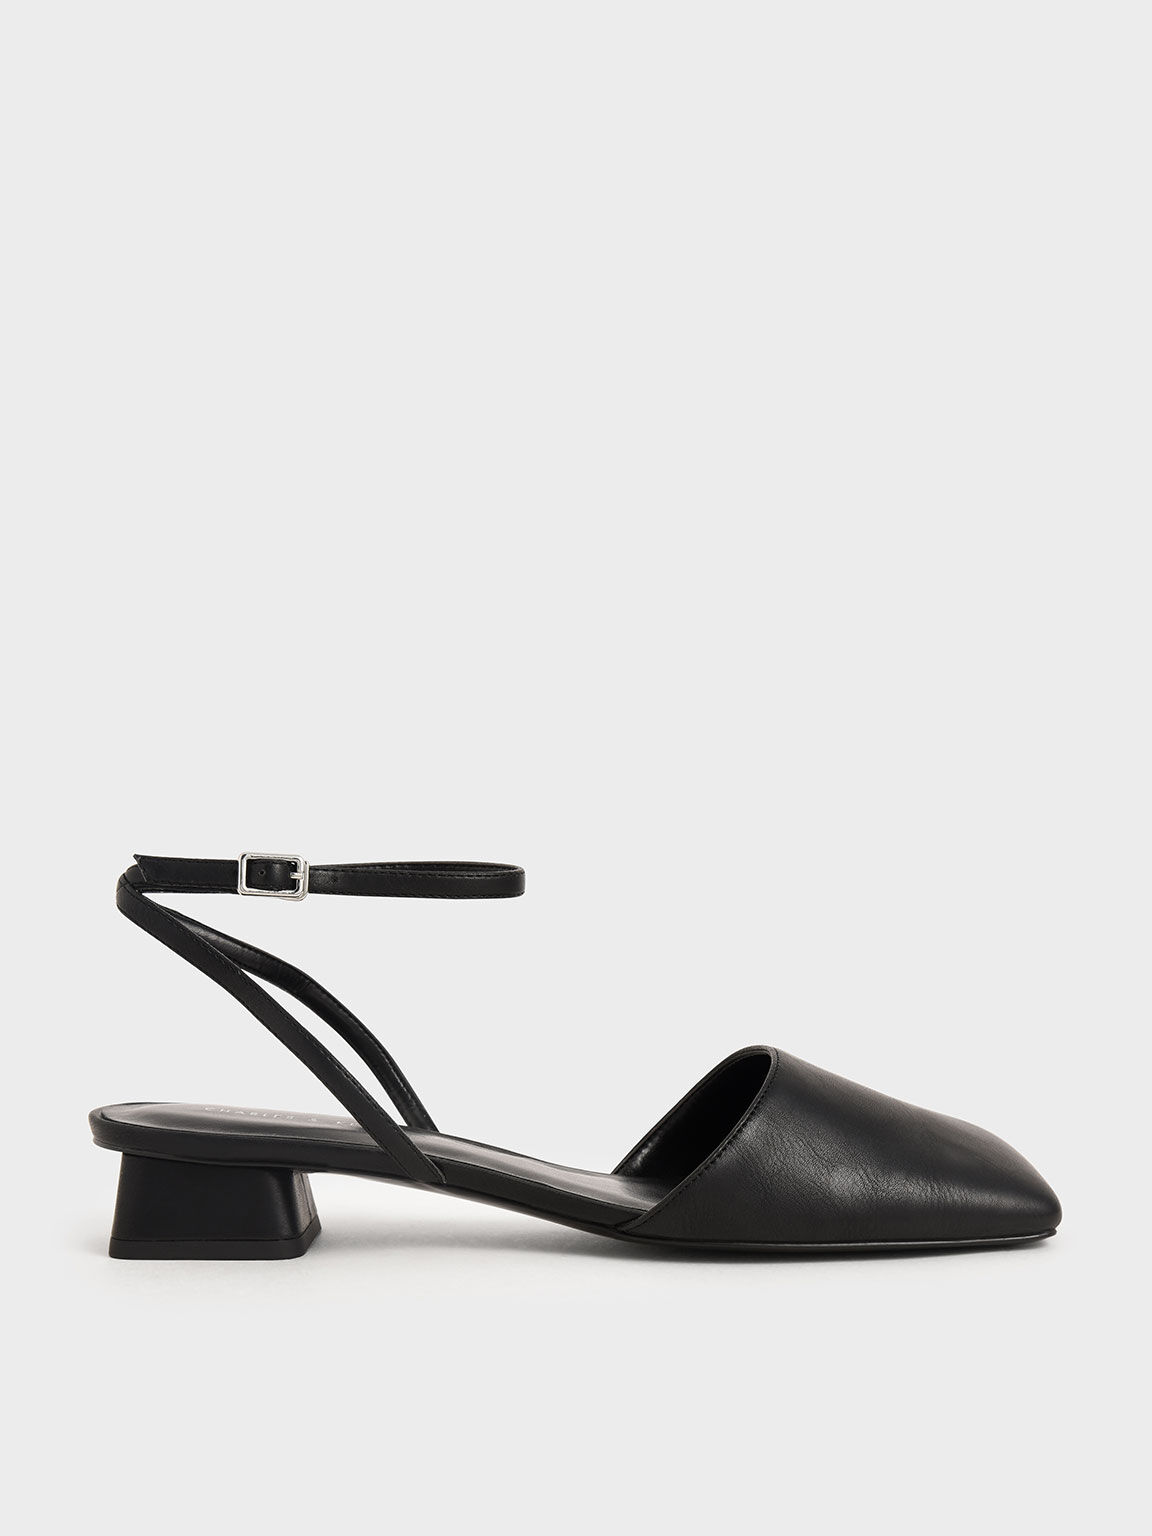 Square Toe Ankle Strap Pumps, Black, hi-res